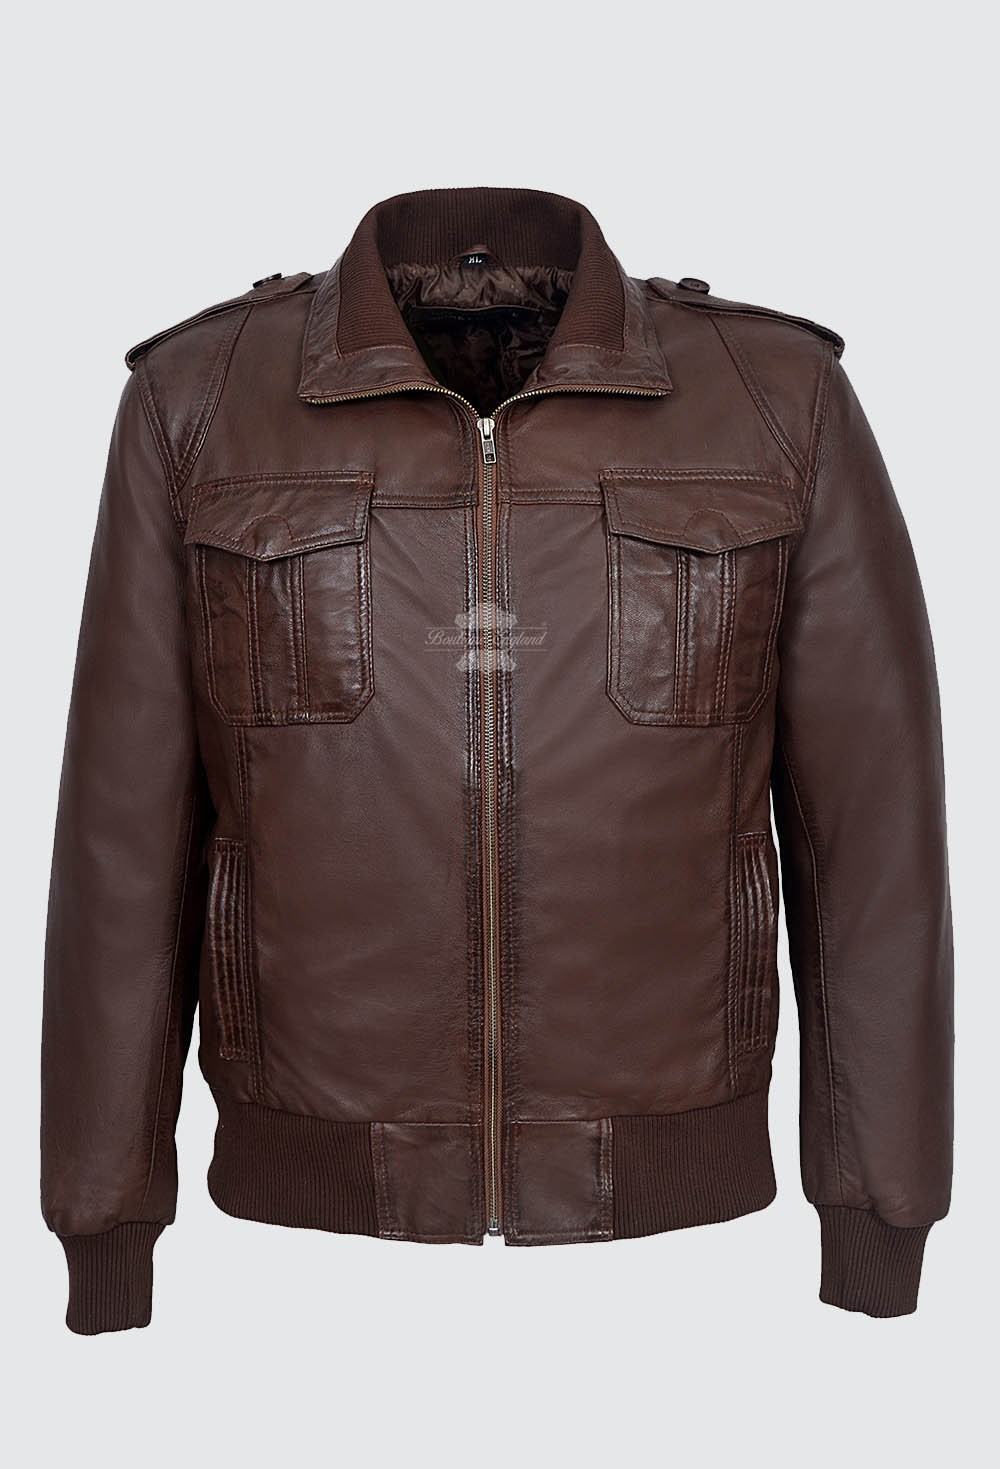 98015a8a1 MEN LEATHER PILOT JACKET BROWN | AVIATOR CLASSIC BOMBER STYLE 100% LEATHER  6996